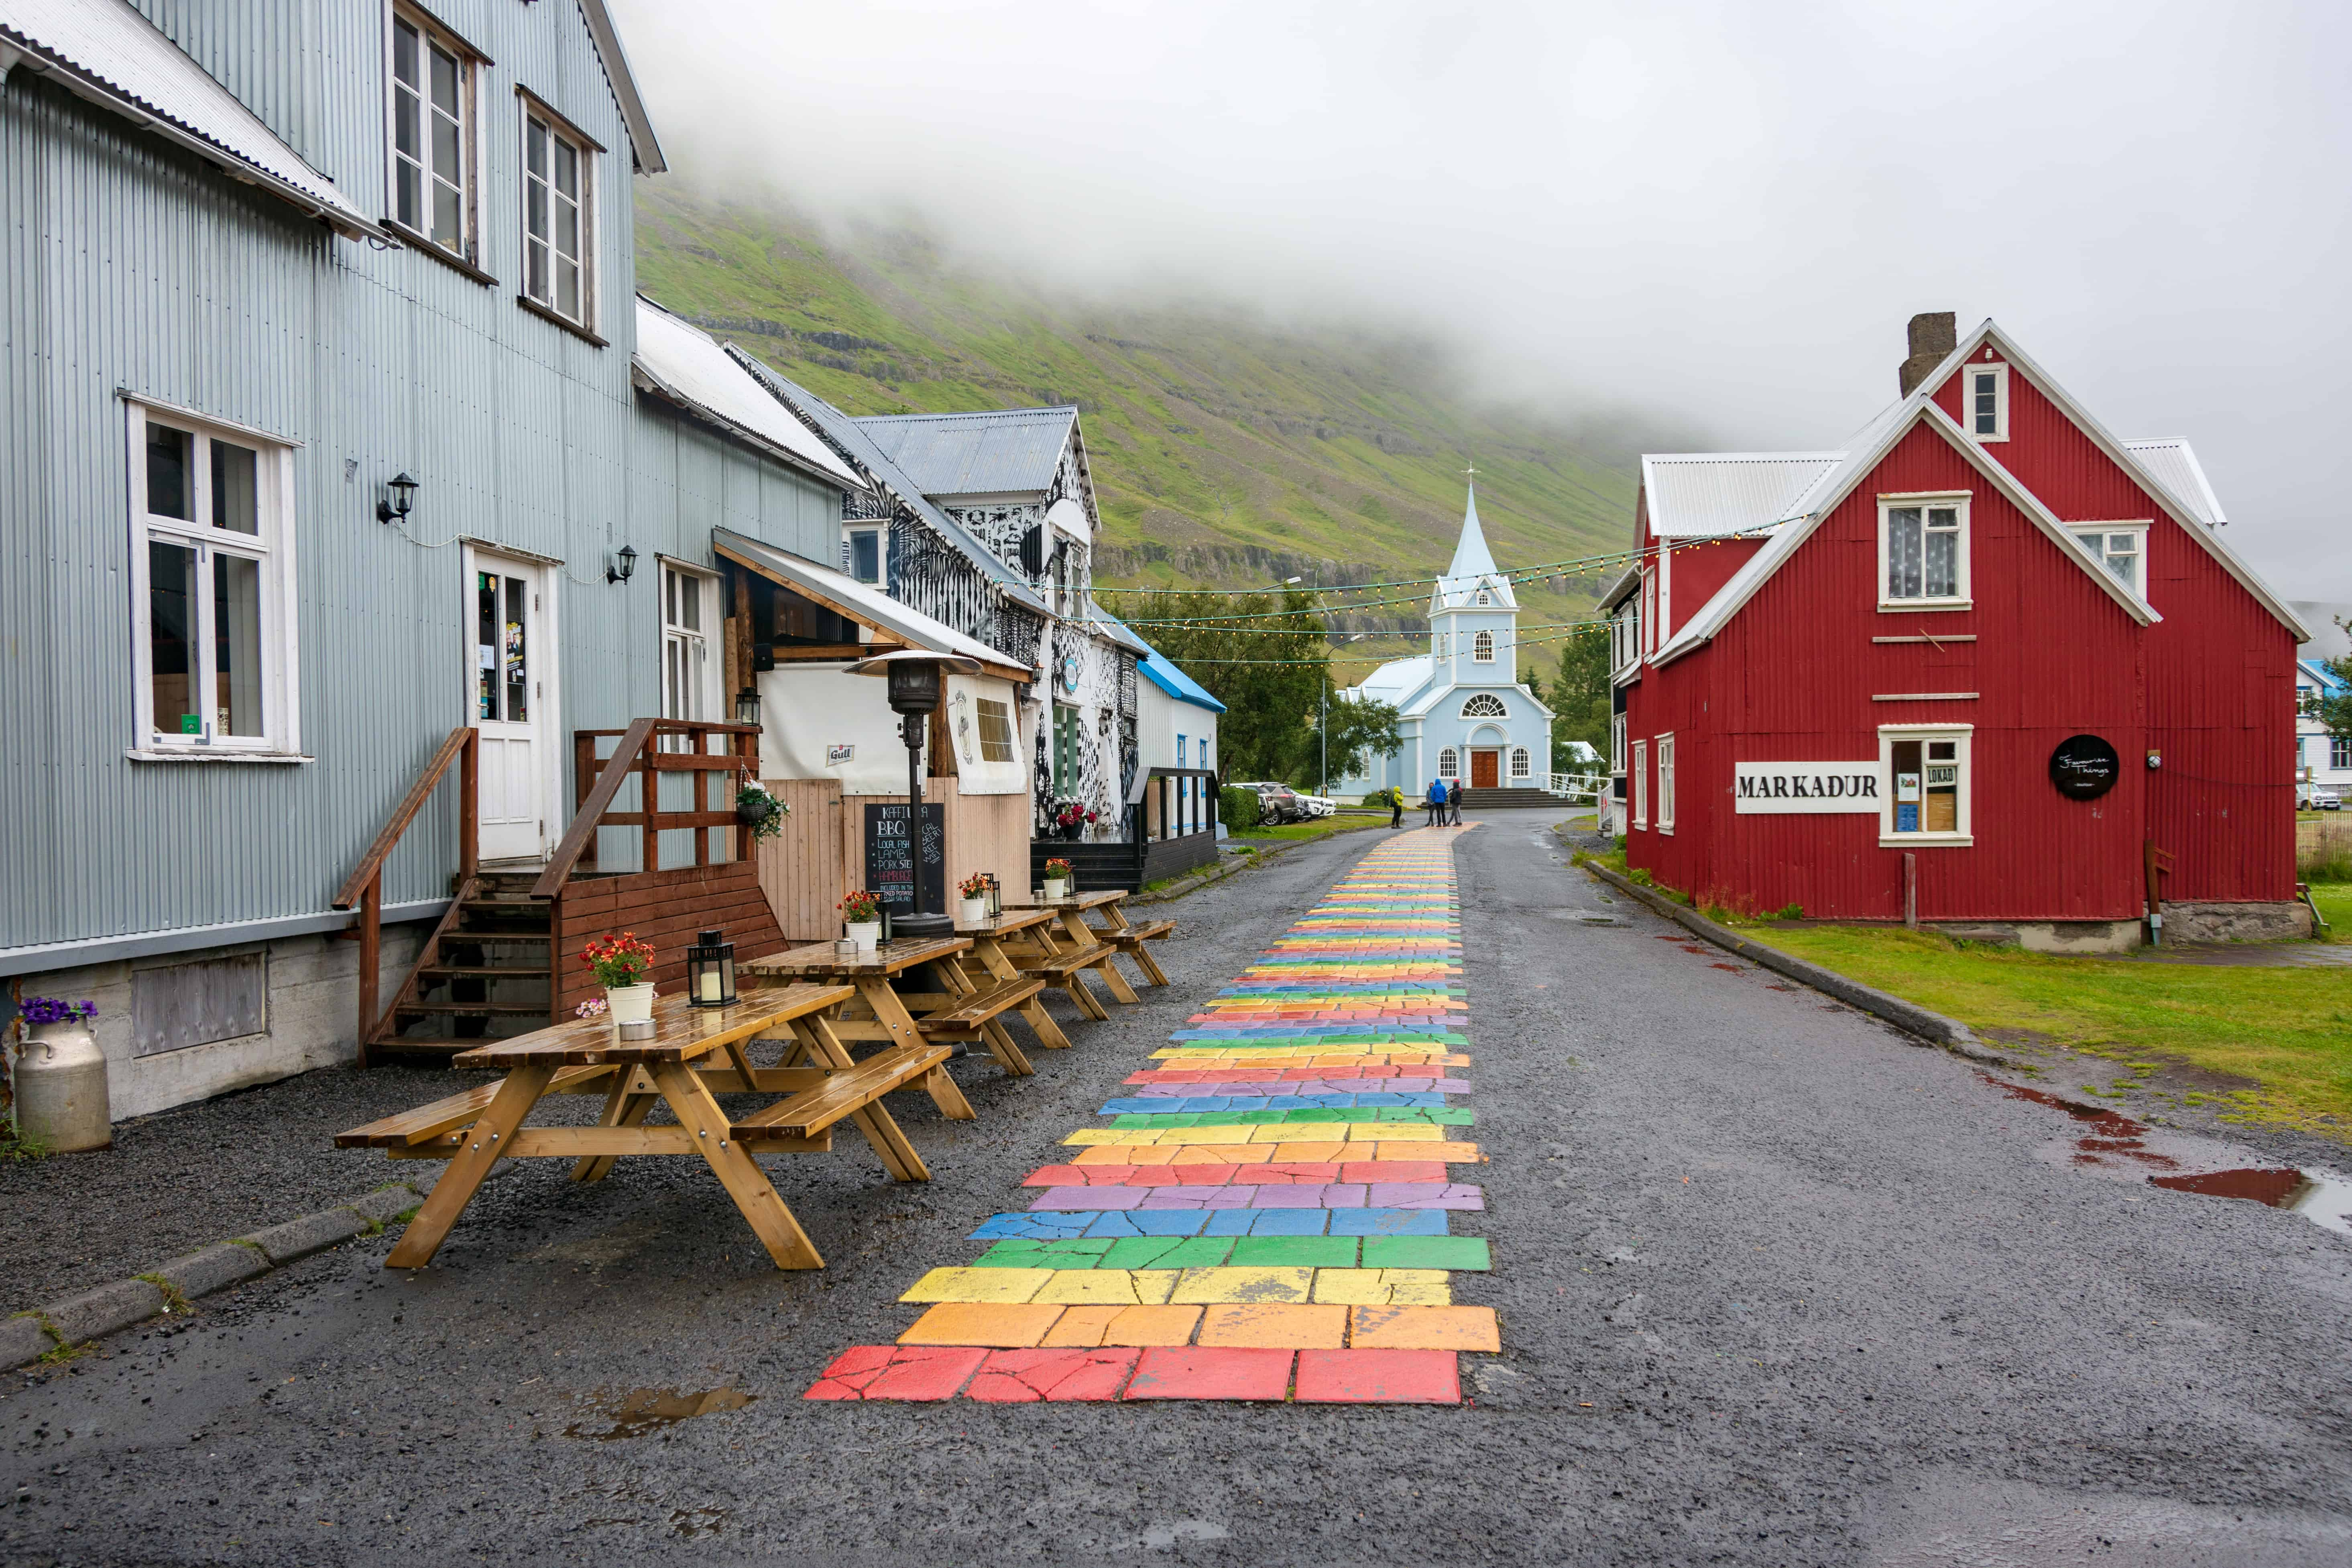 This photo shows town of Seiðisfjörður in Eastern Iceland which is one of the stops on this trip.